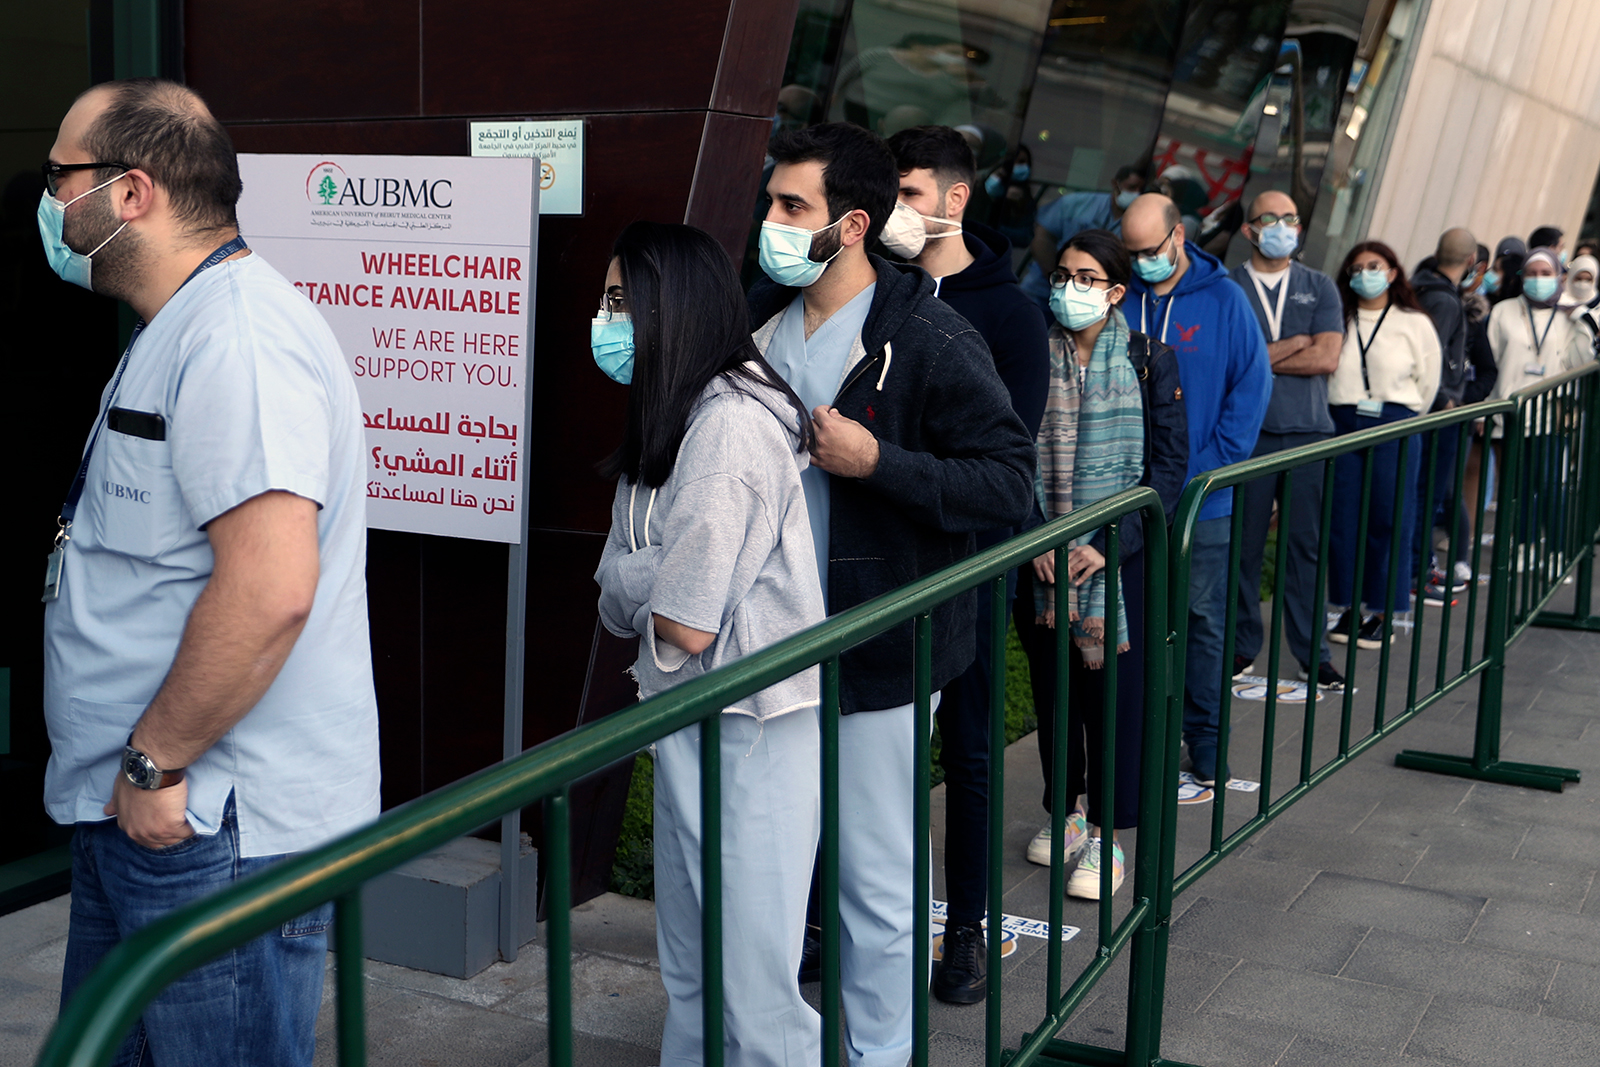 Frontline medical workers stand in line to get the Pfizer-BioNTech COVID-19 vaccine during a nationwide vaccination program at the American University Medical Center in Beirut, Lebanon, on February 14.